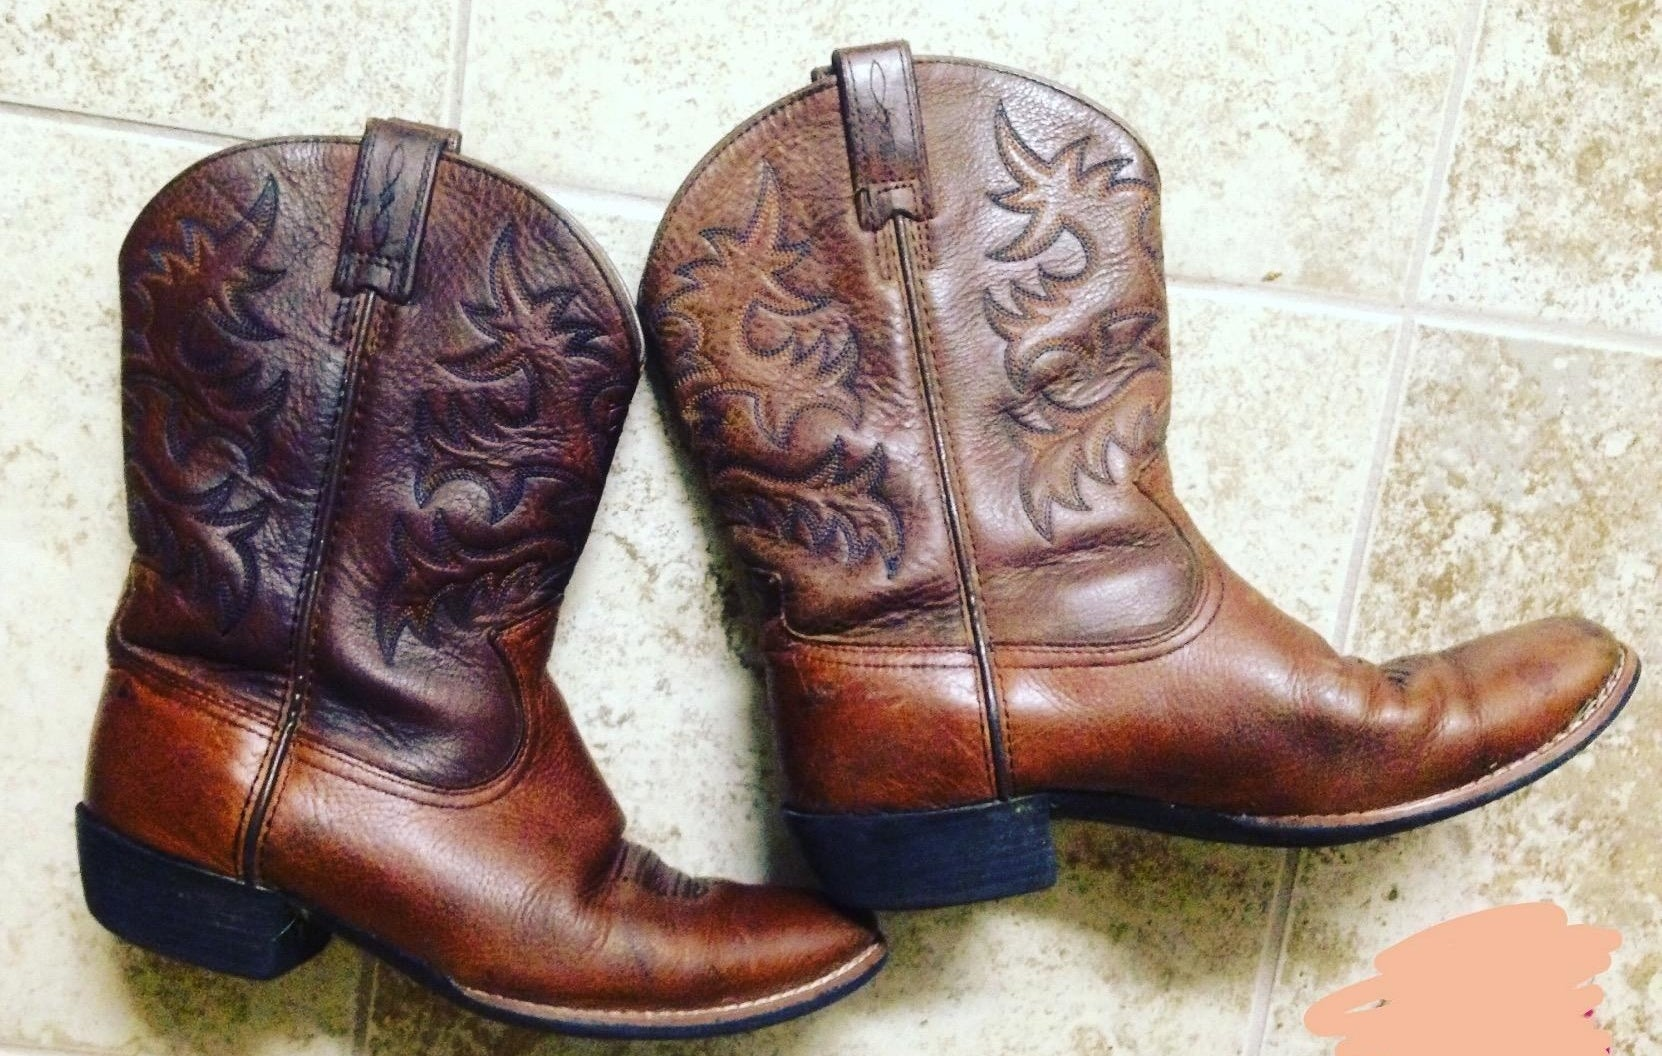 reviewer's boots restored to looking brand new after using a leather conditioner